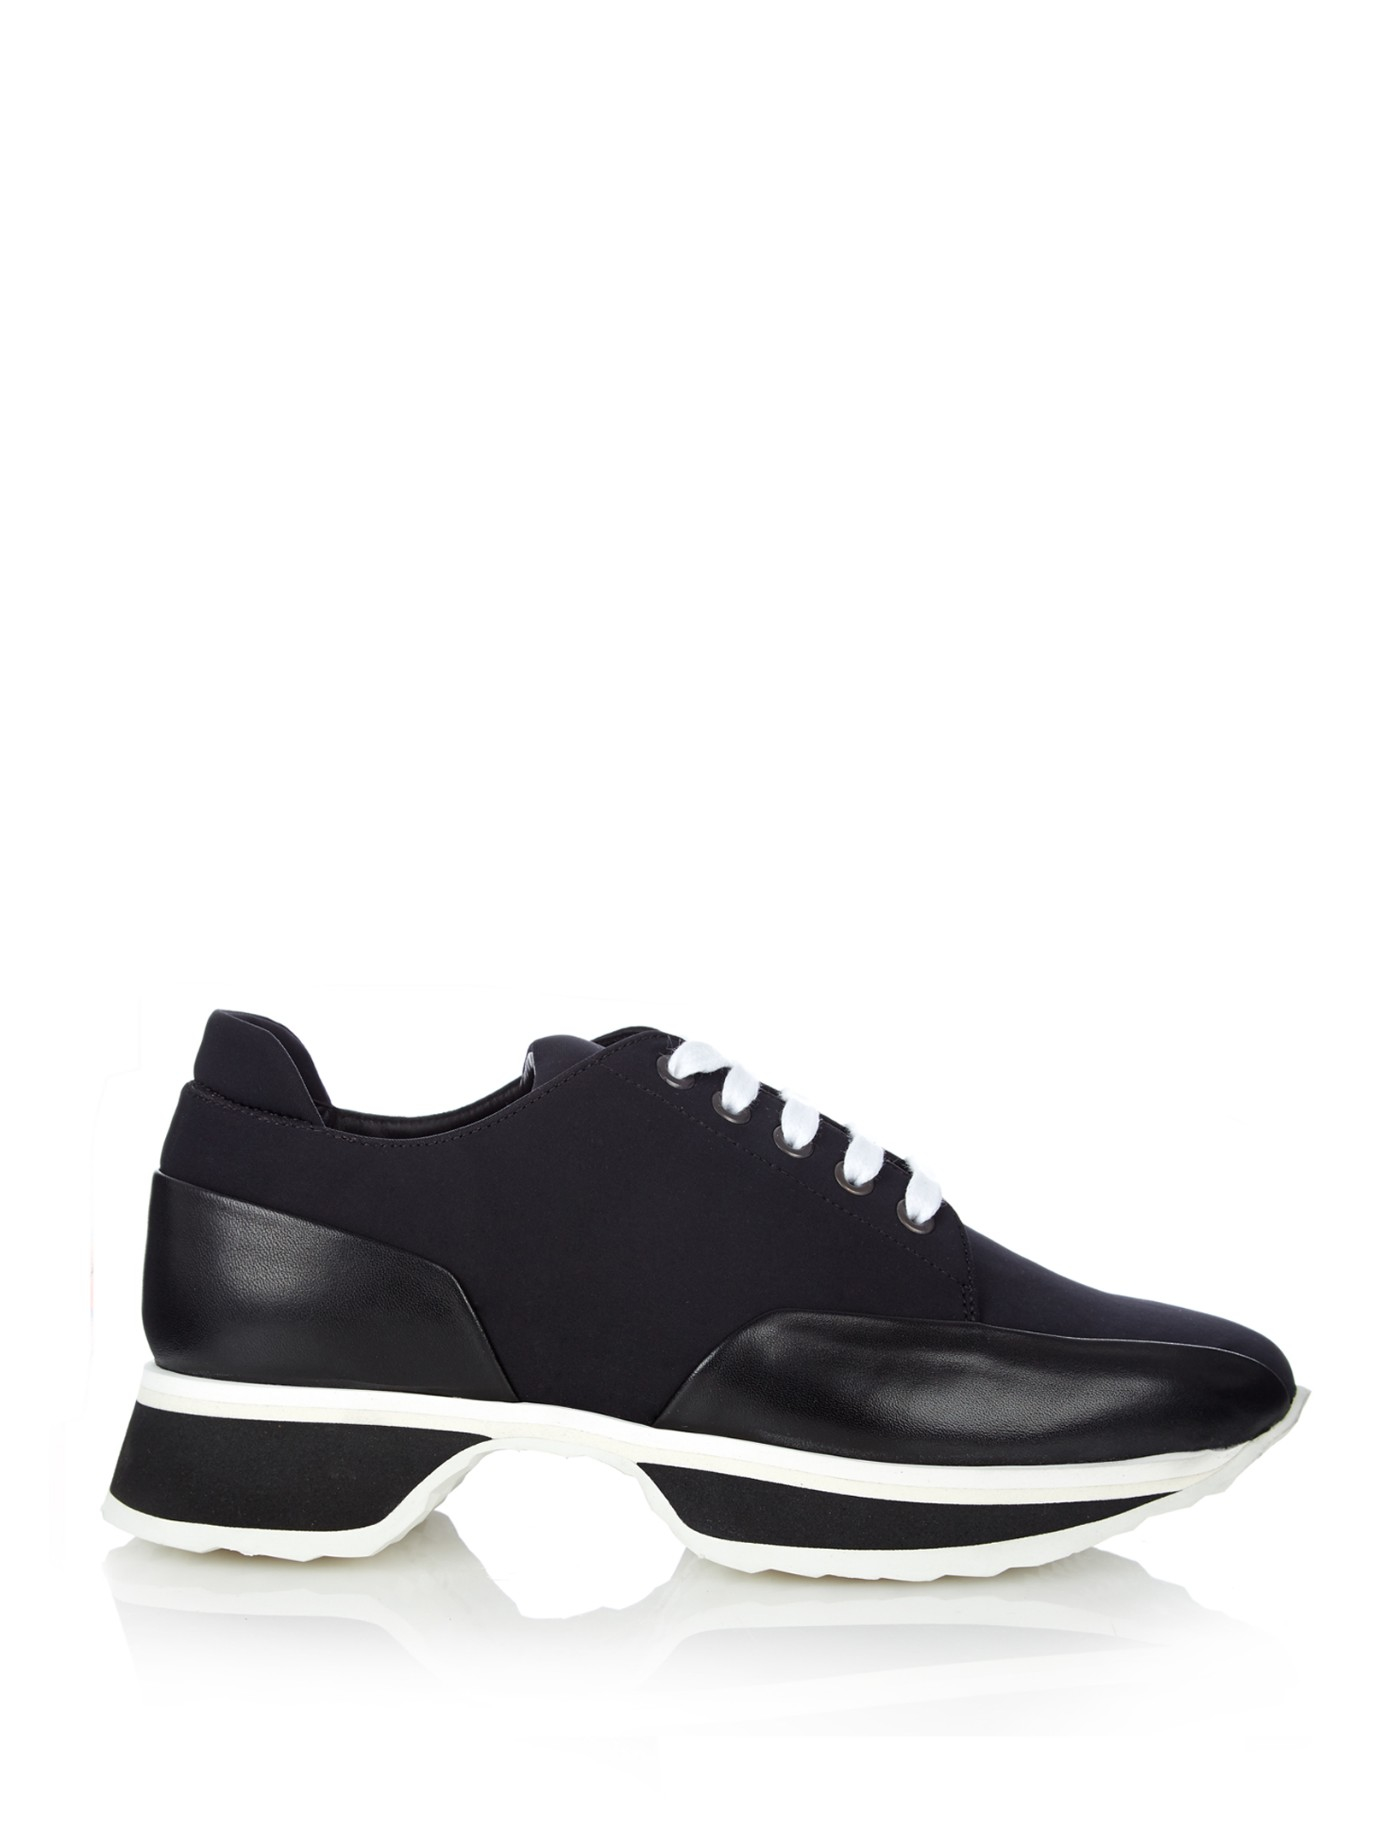 Lyst - Pierre Hardy Platform Sneakers With Leather - Black . 09a08660c